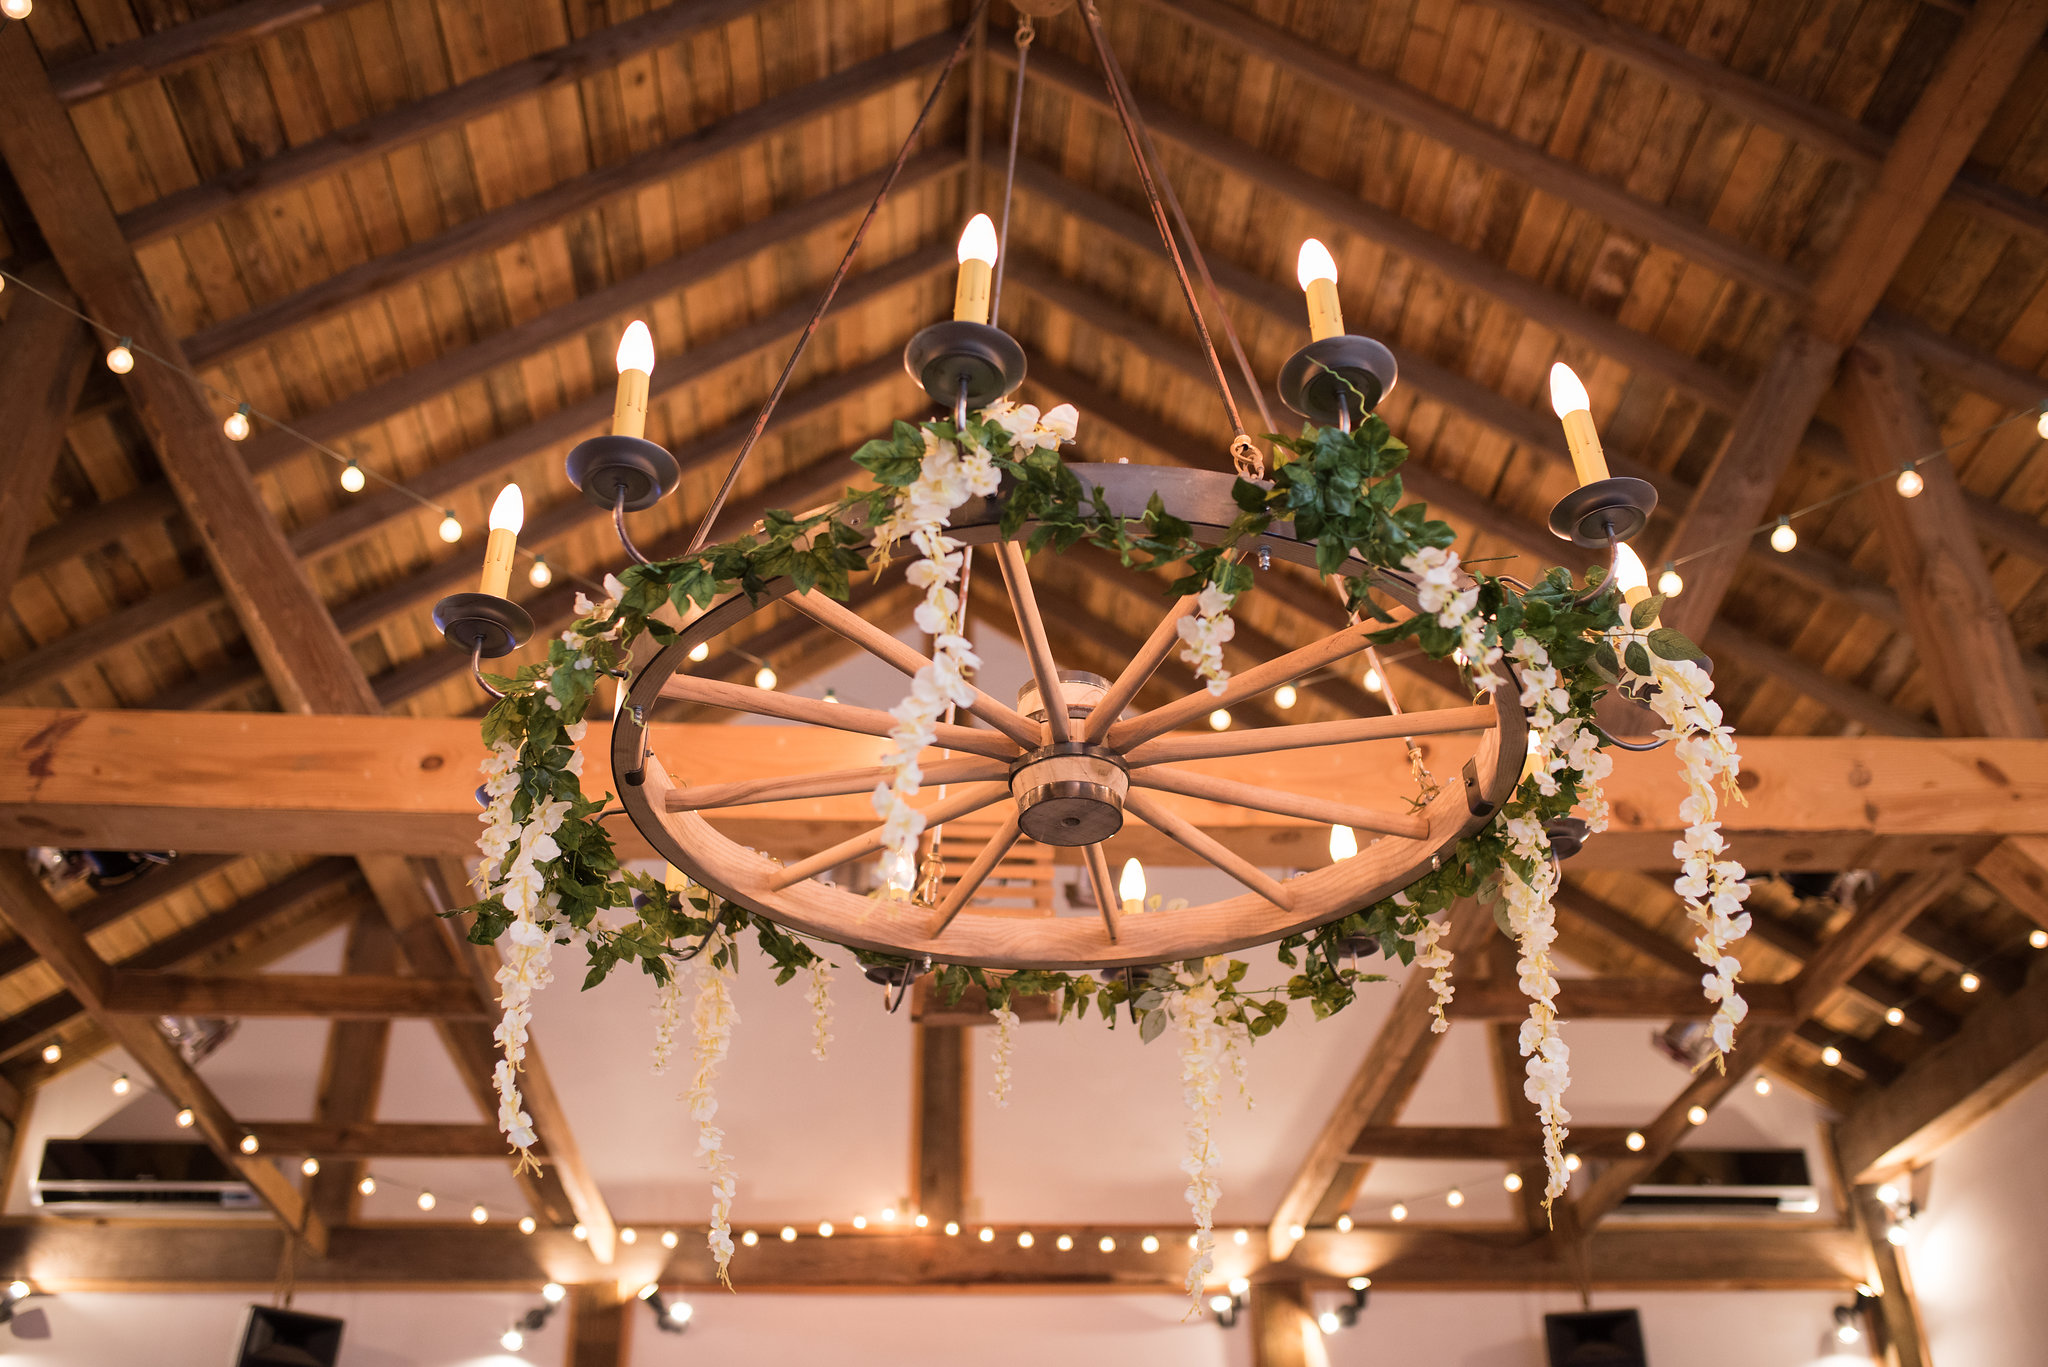 st-augustine-photographer-pioneer-barn-events-wedding-sarah-annay-photography-florida5.jpg